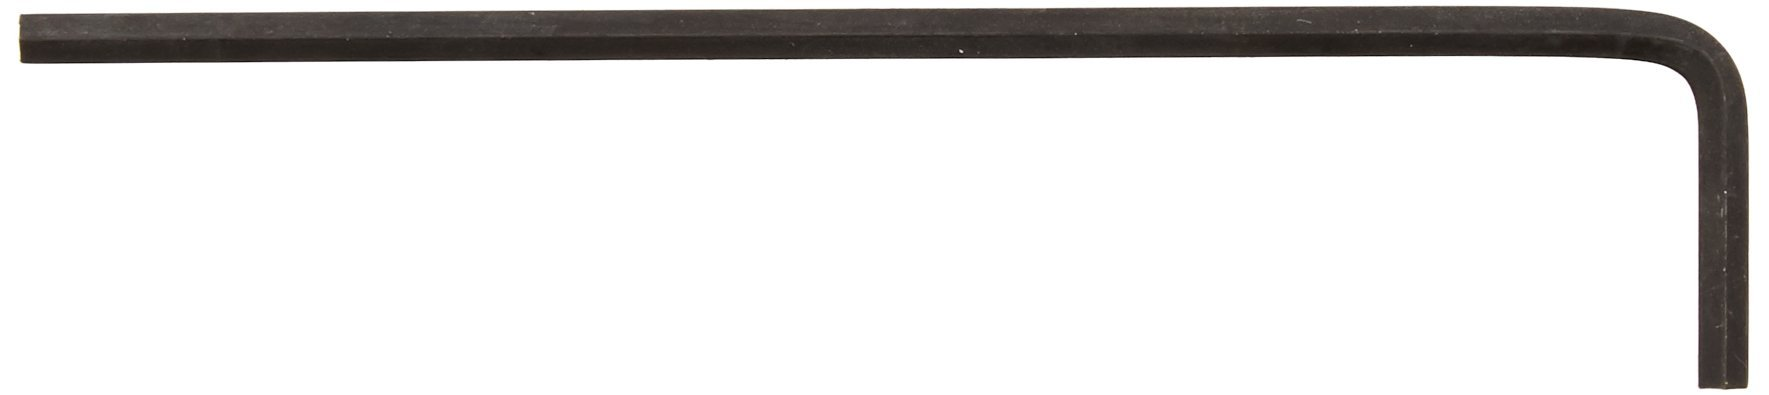 Bondhus 15906 7/64'' Hex Tip Key L-Wrench with ProGuard Finish, Tagged and Barcoded, Long Arm